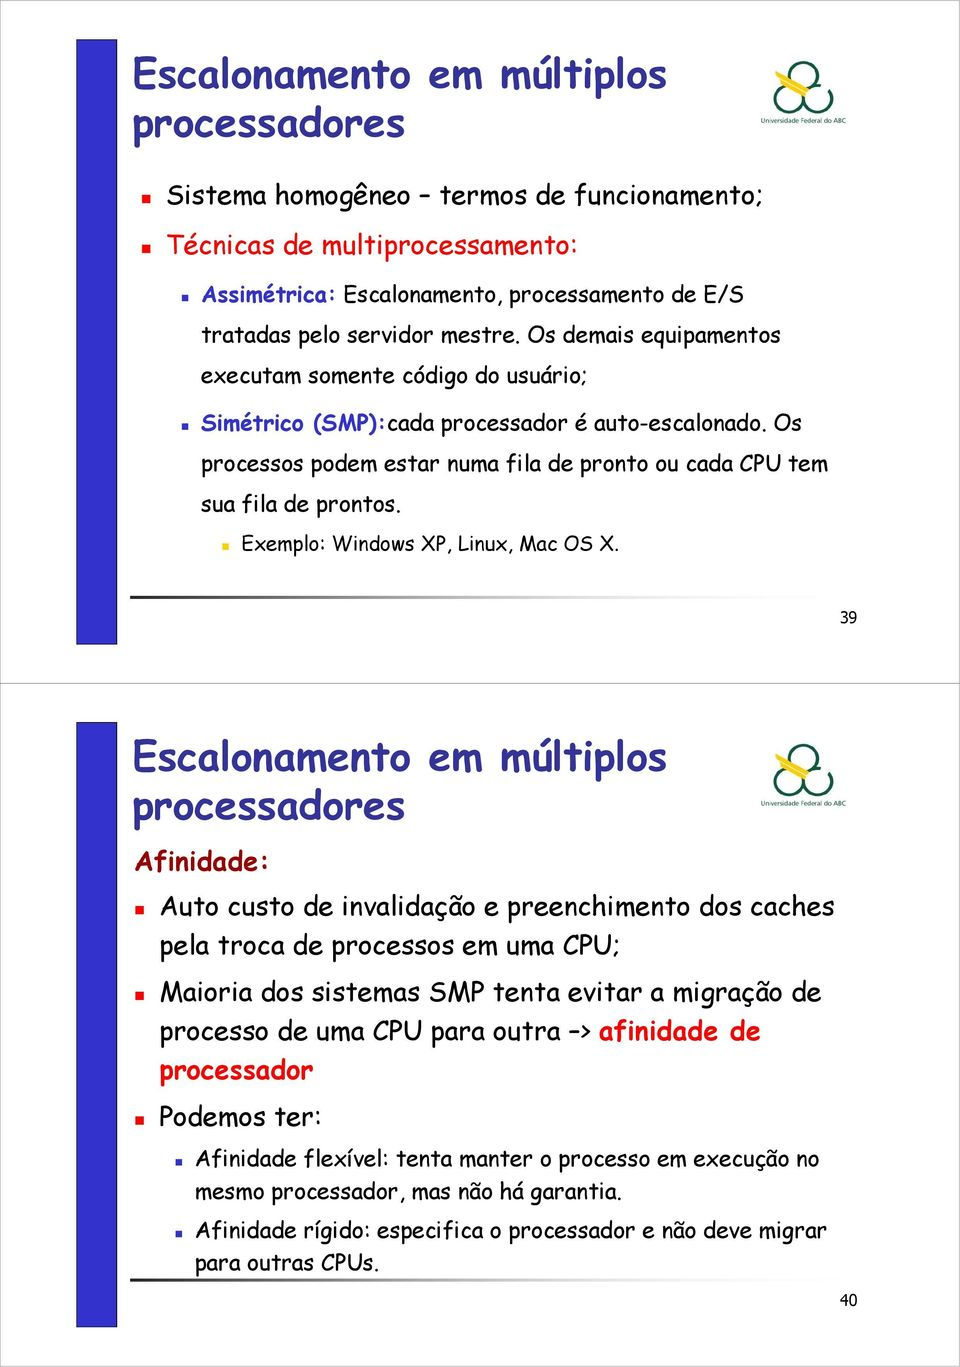 Exemplo: Windows XP, Linux, Mac OS X.